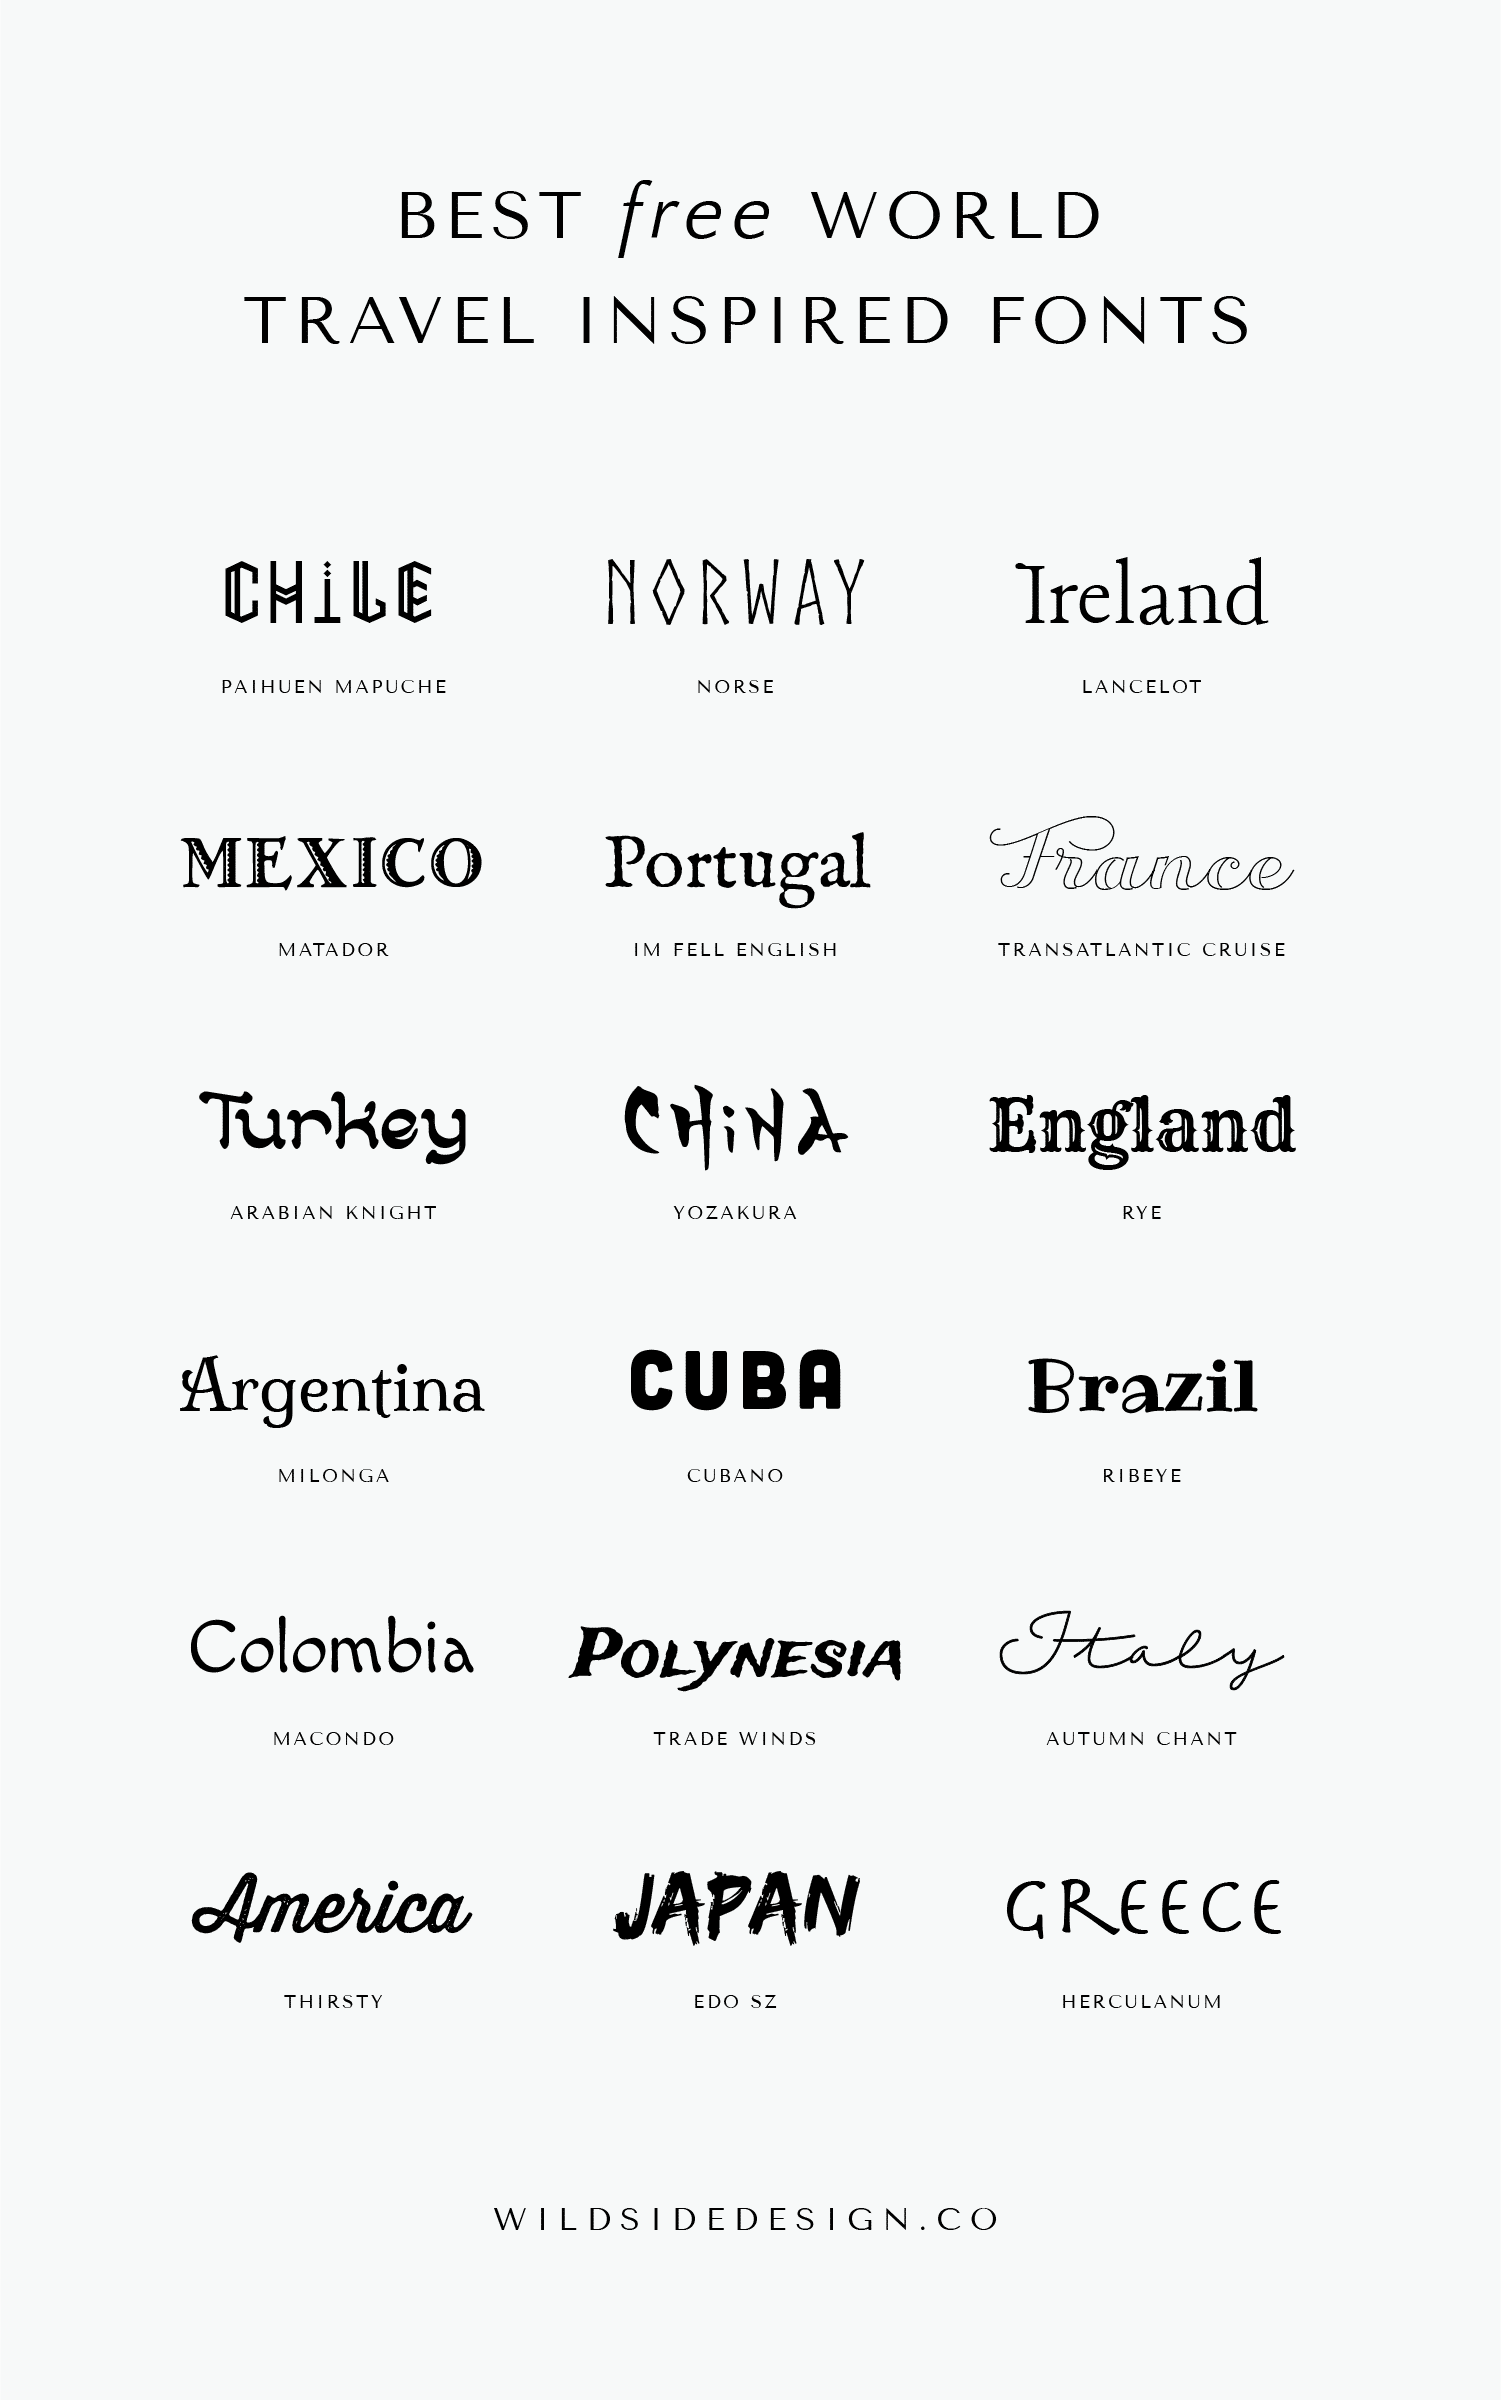 The Best Free World Travel Inspired Fonts Travel fonts